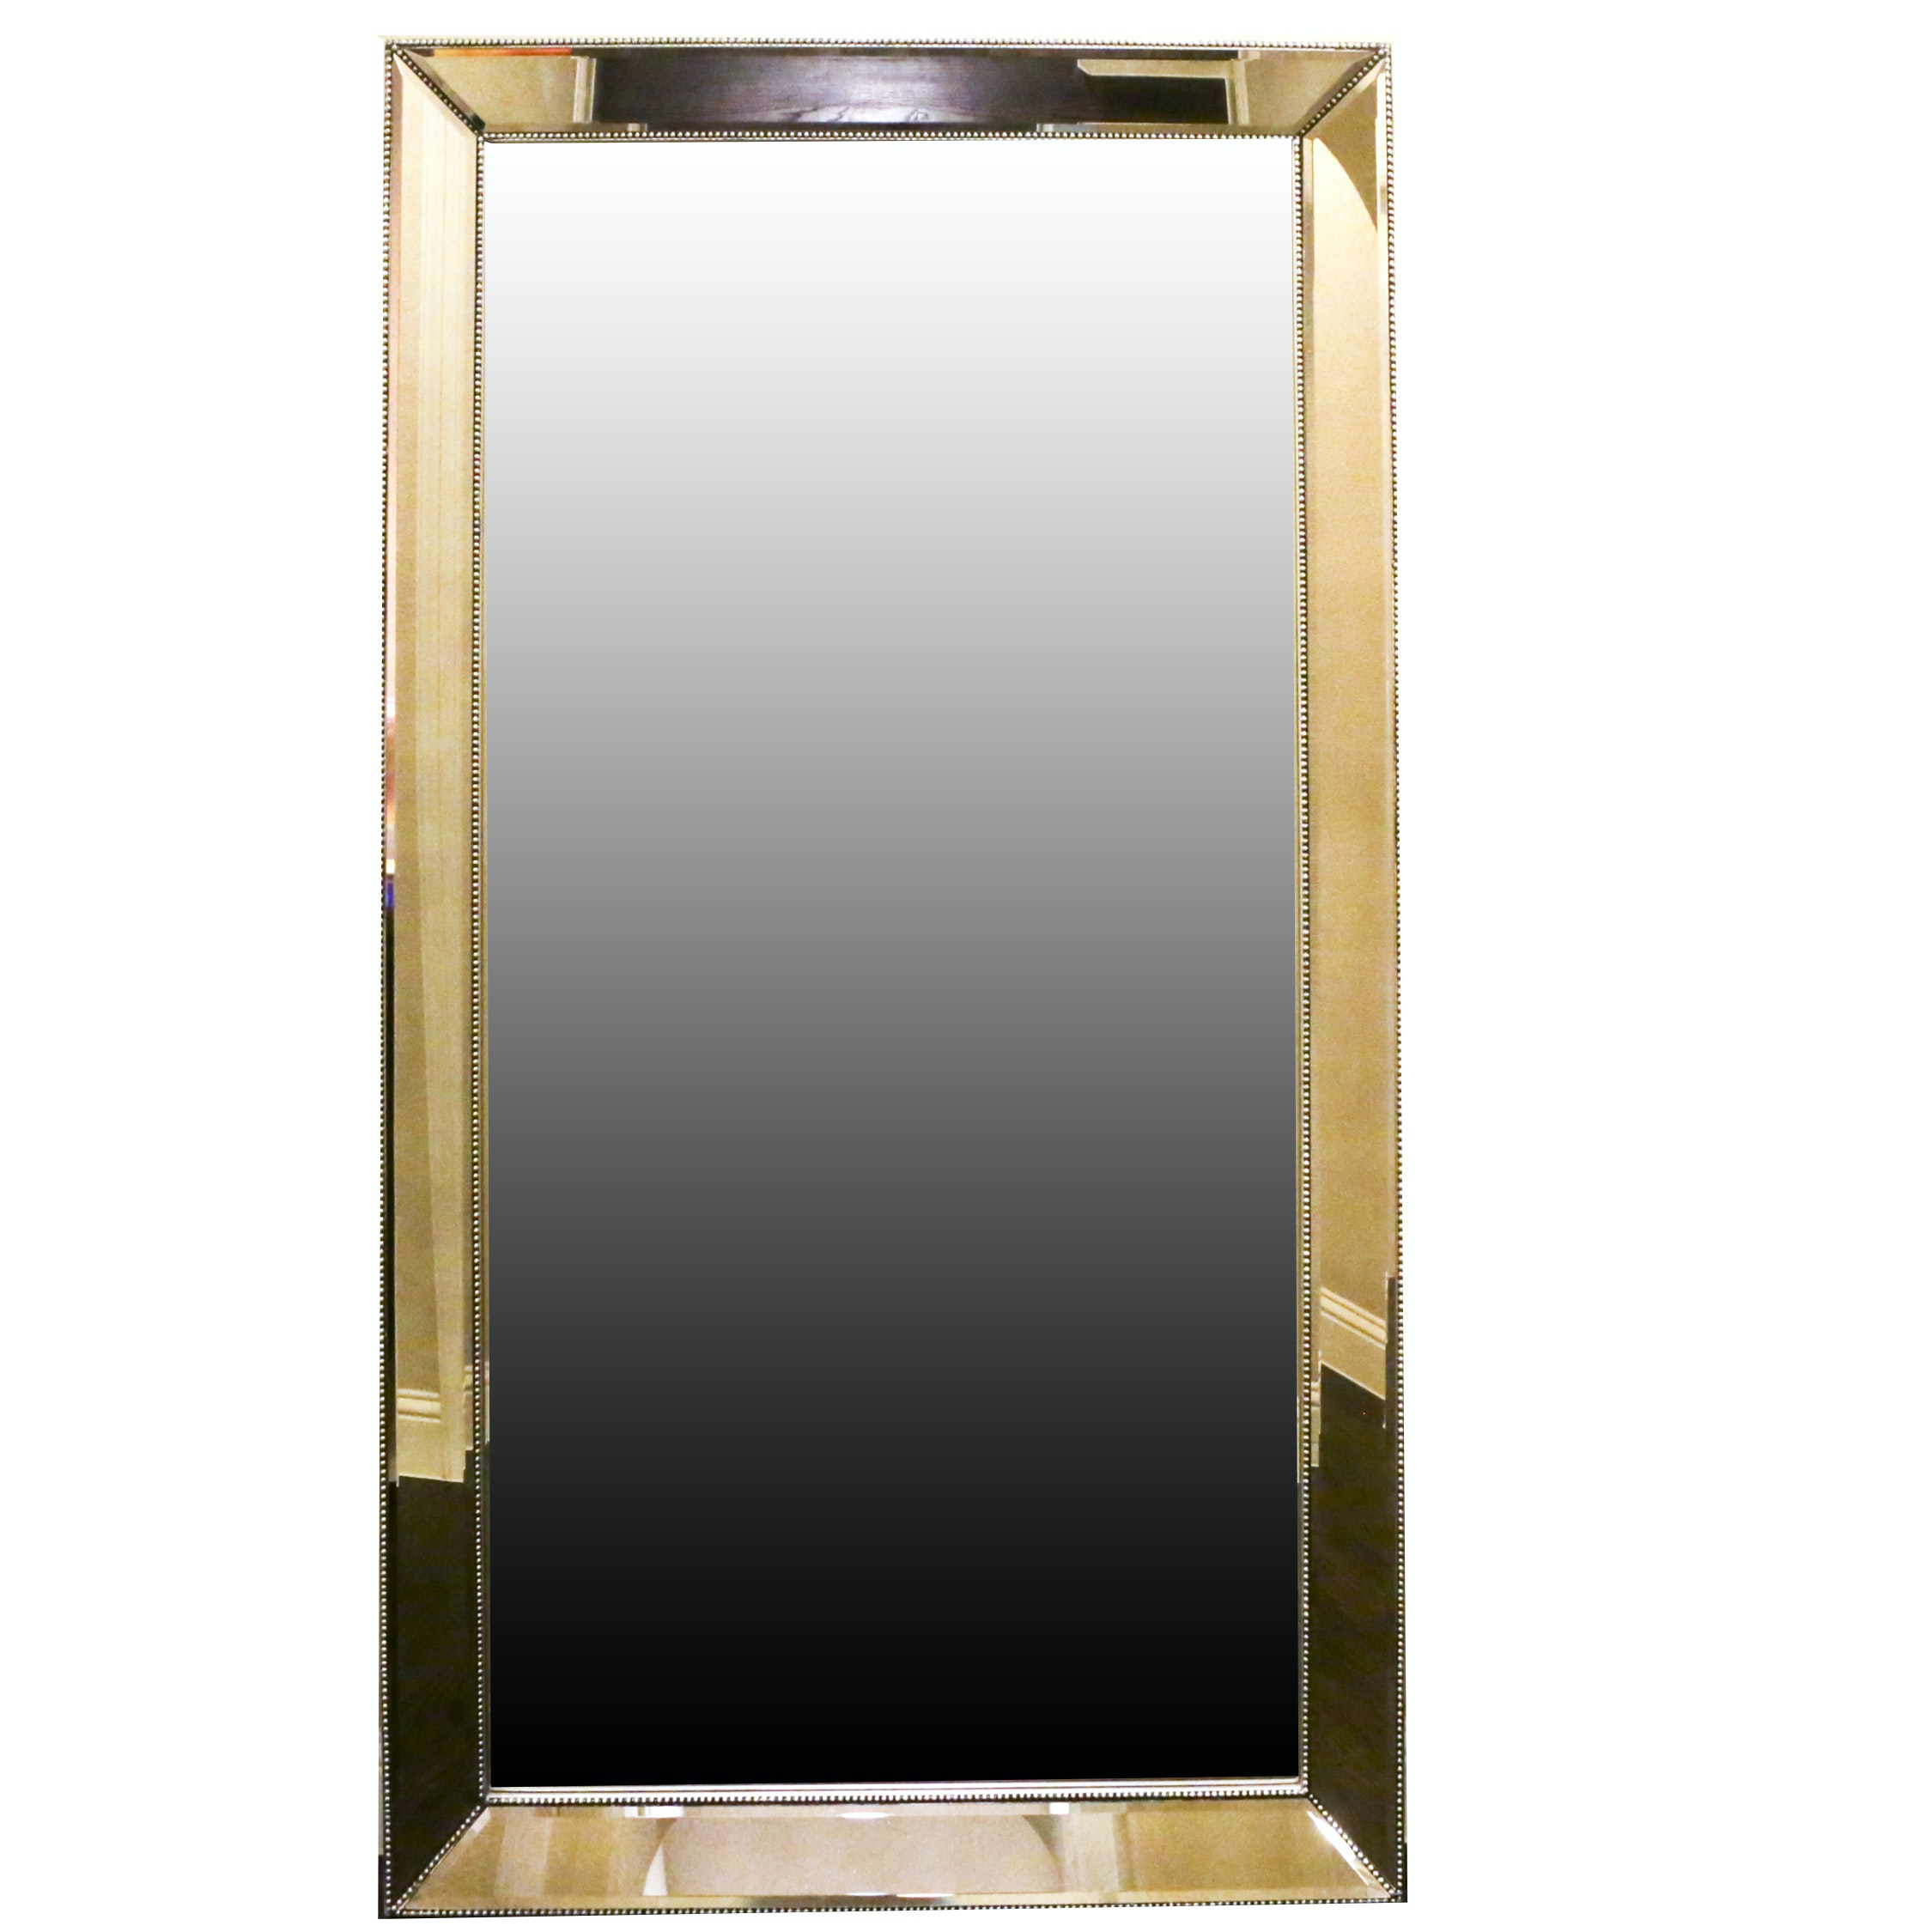 Floor Mirror with Angled Edge Mirror Frame